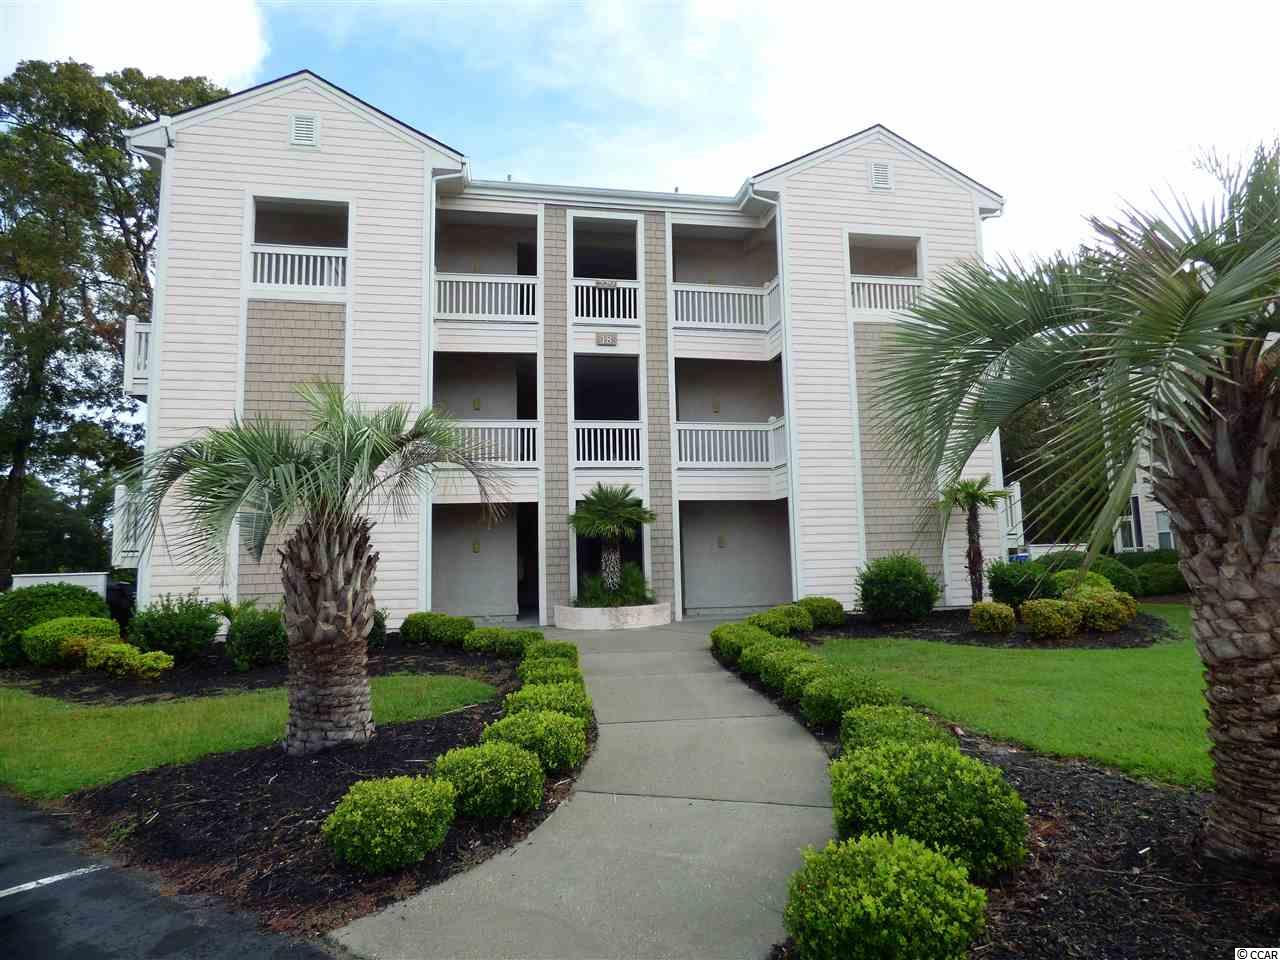 Condo MLS:1820529 Sea Trail - Sunset Beach, NC  229 Kings Trail Dr. Sunset Beach NC